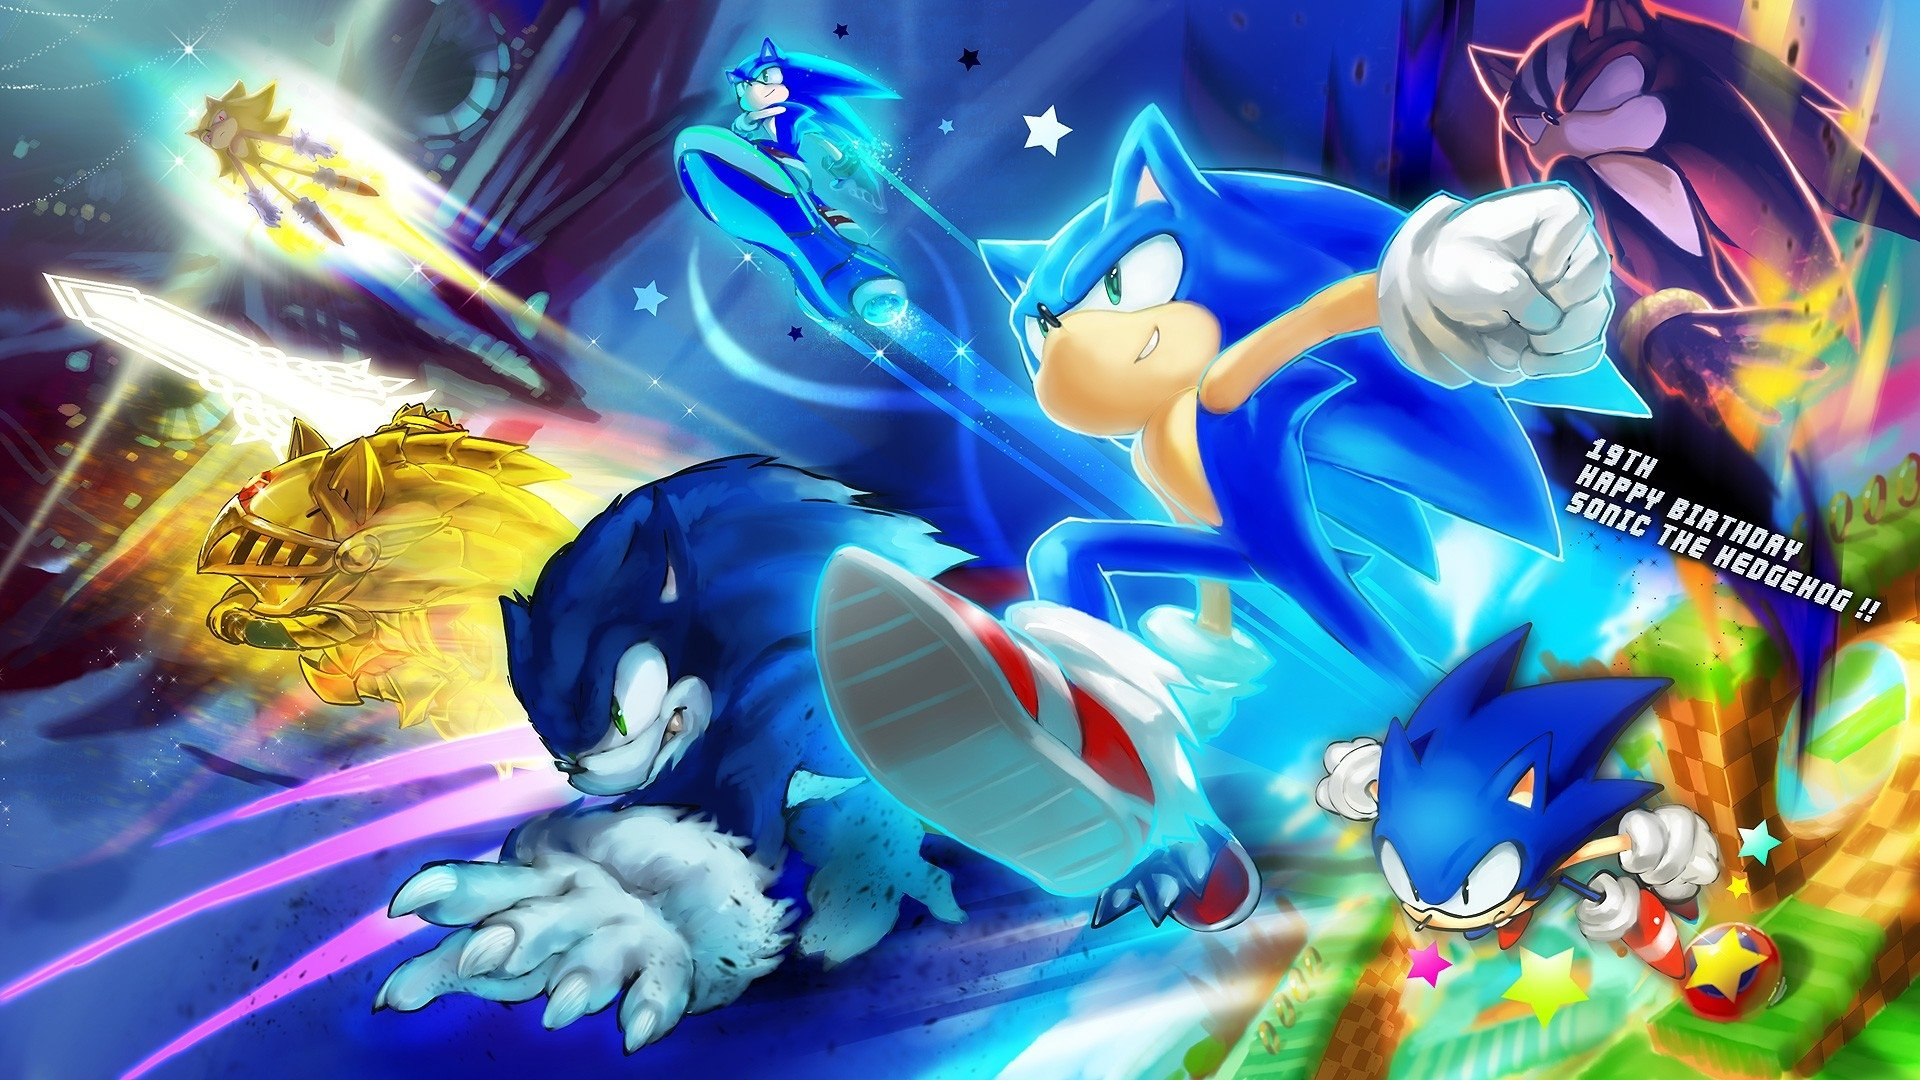 139 Sonic the Hedgehog HD Wallpapers | Background Images - Wallpaper Abyss